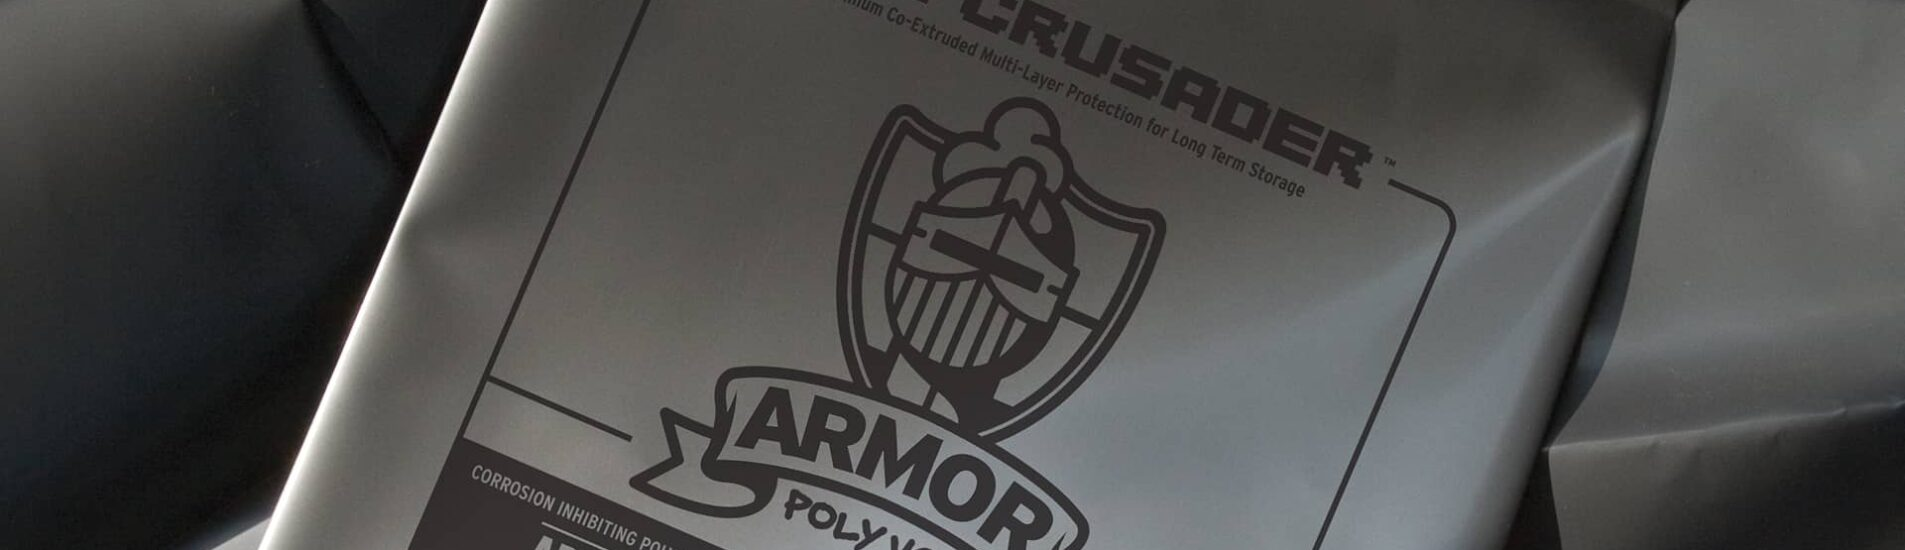 Close up of ARMOR CRUSADER film